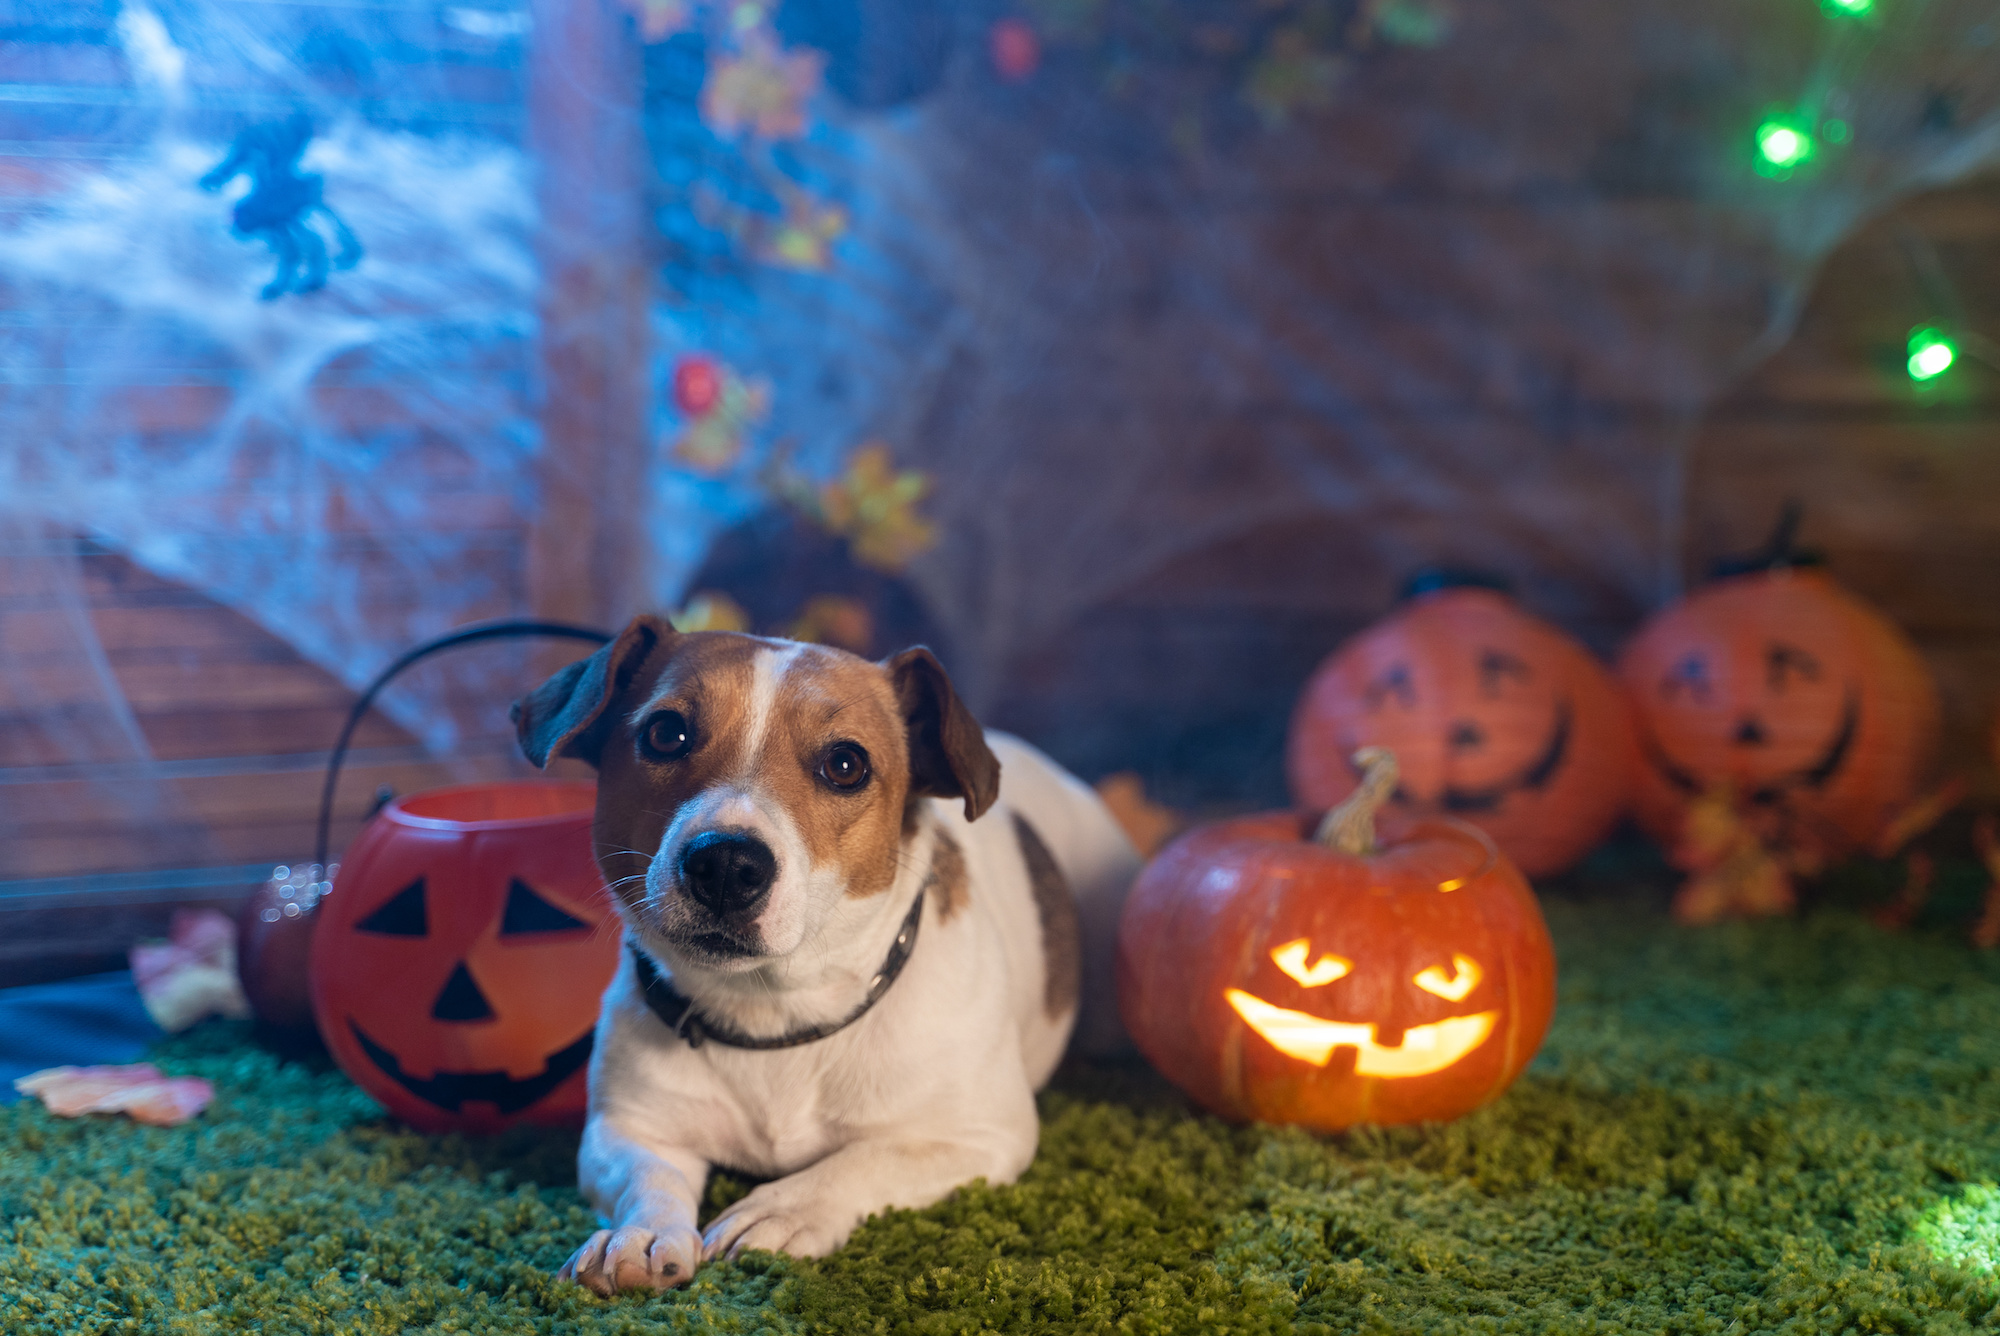 Keep your dog happy and safe this Halloween